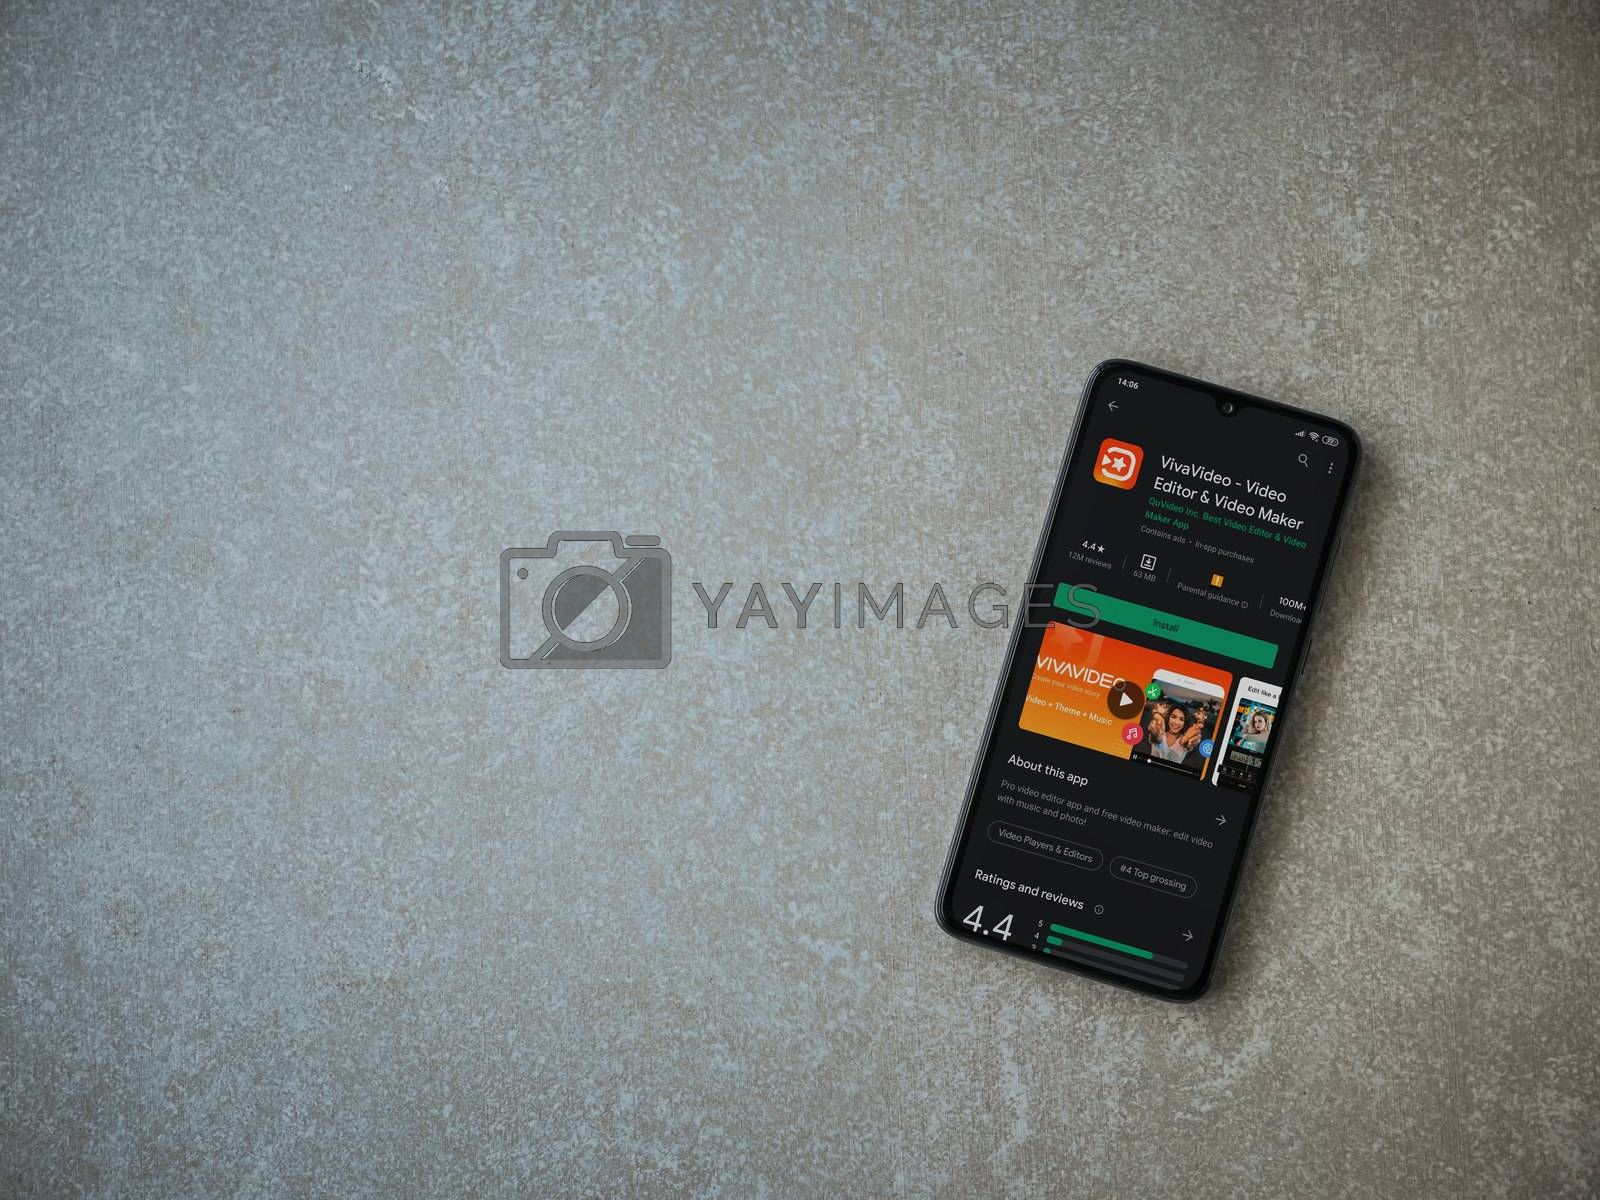 Lod, Israel - July 8, 2020: VivaVideo - Video Editor and Movie Maker app play store page on the display of a black mobile smartphone on ceramic stone background. Top view flat lay with copy space.